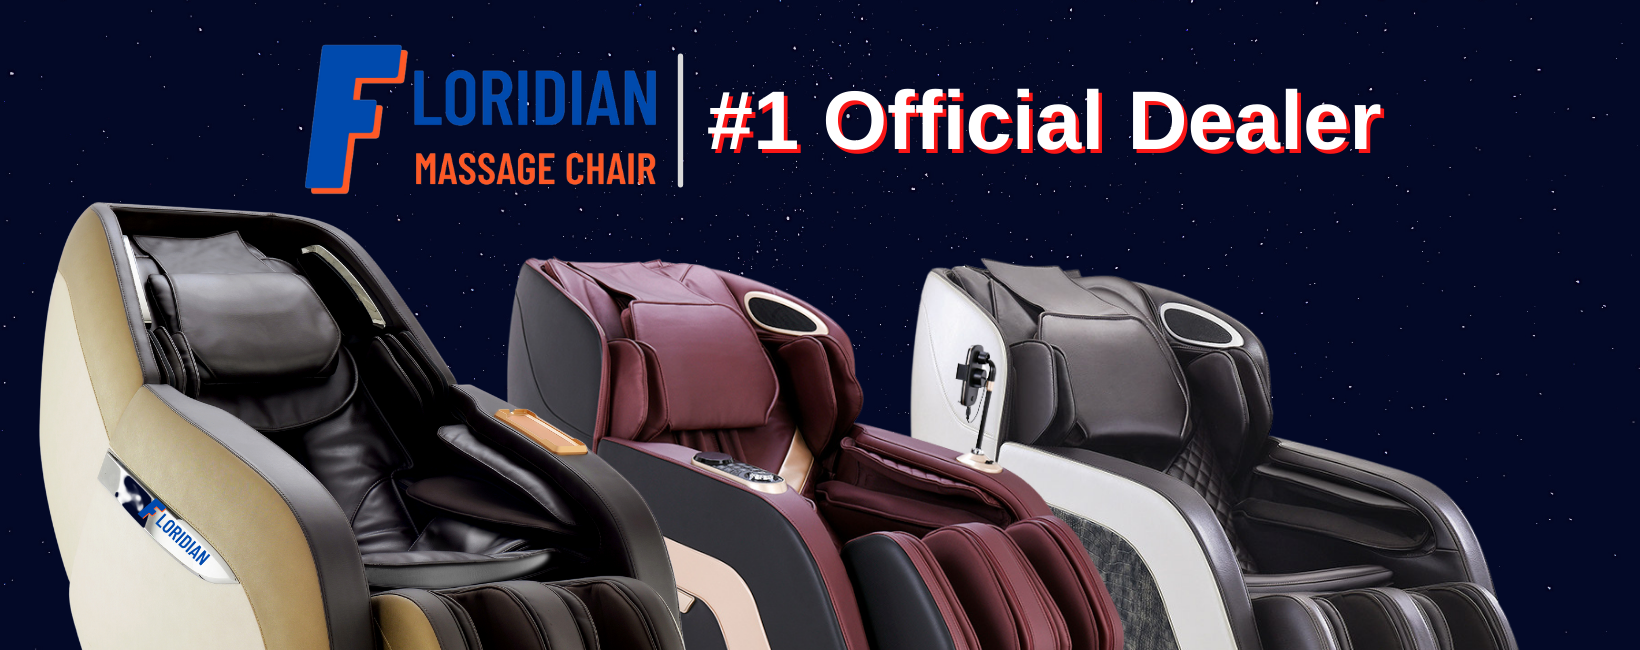 LABBROS. Health & Wellness is proud to be the EXCLUSIVE PARTNER with the Floridian massage chair. Floridian is a latest brand in the massage chair industry. They are FL local-owned and operated with their priority mission:To help more people to improve their health through top-tier technology at the best price point that can be used from the comfort of home everyday. Floridian models are developed based on their customer-centered, It designed with top-tier technology and a luxury look and feel that truly provides a massage experience worthy of royalty.